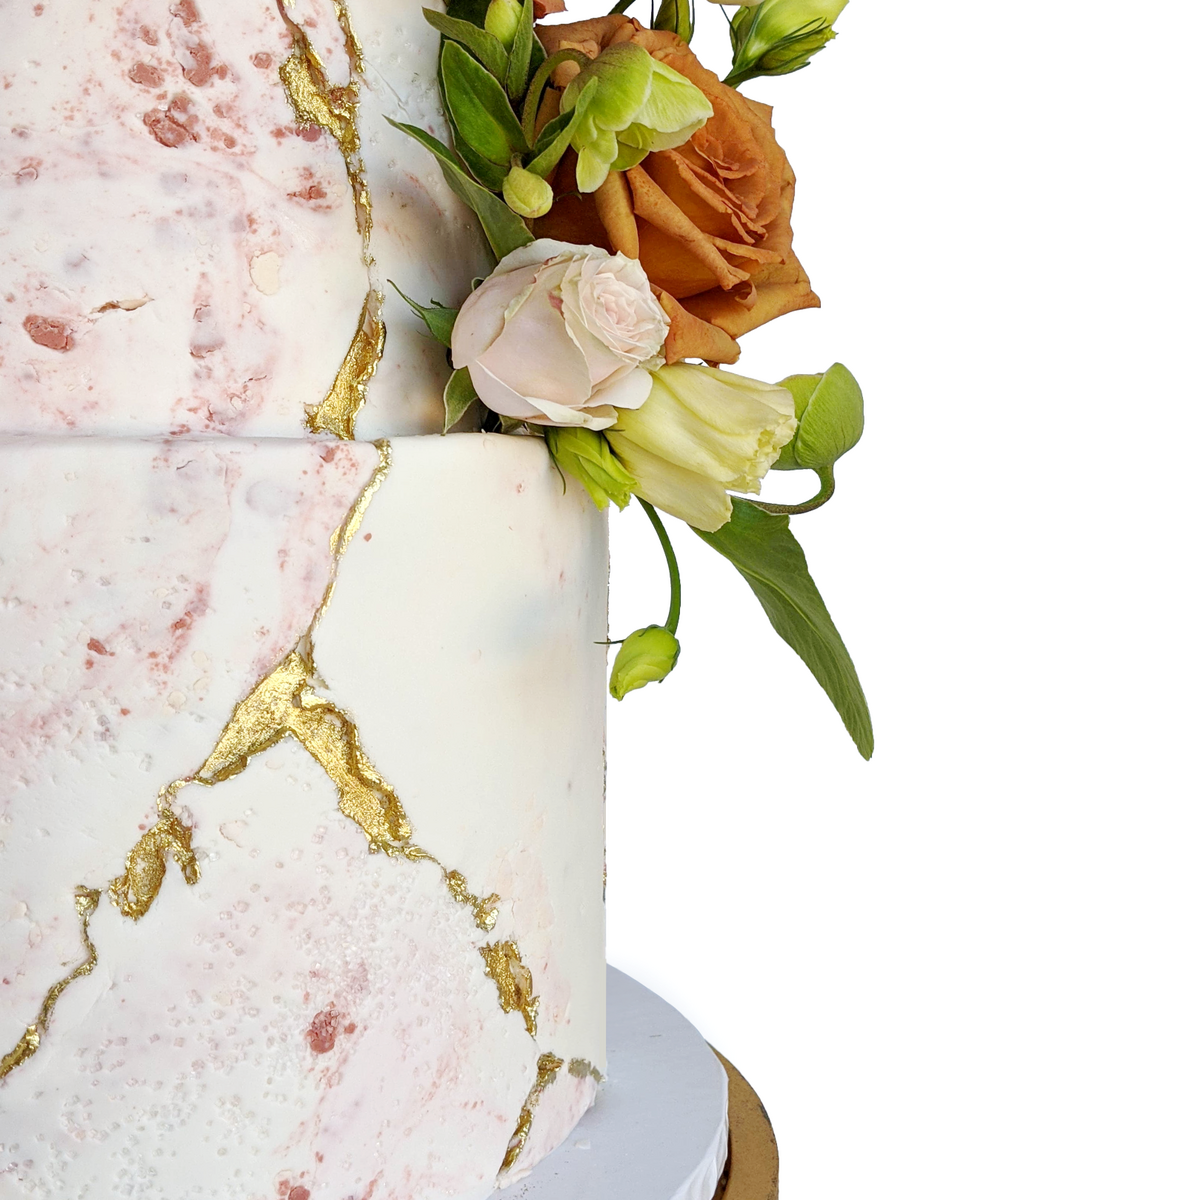 Whippt Kitchen - Wedding Cake 1